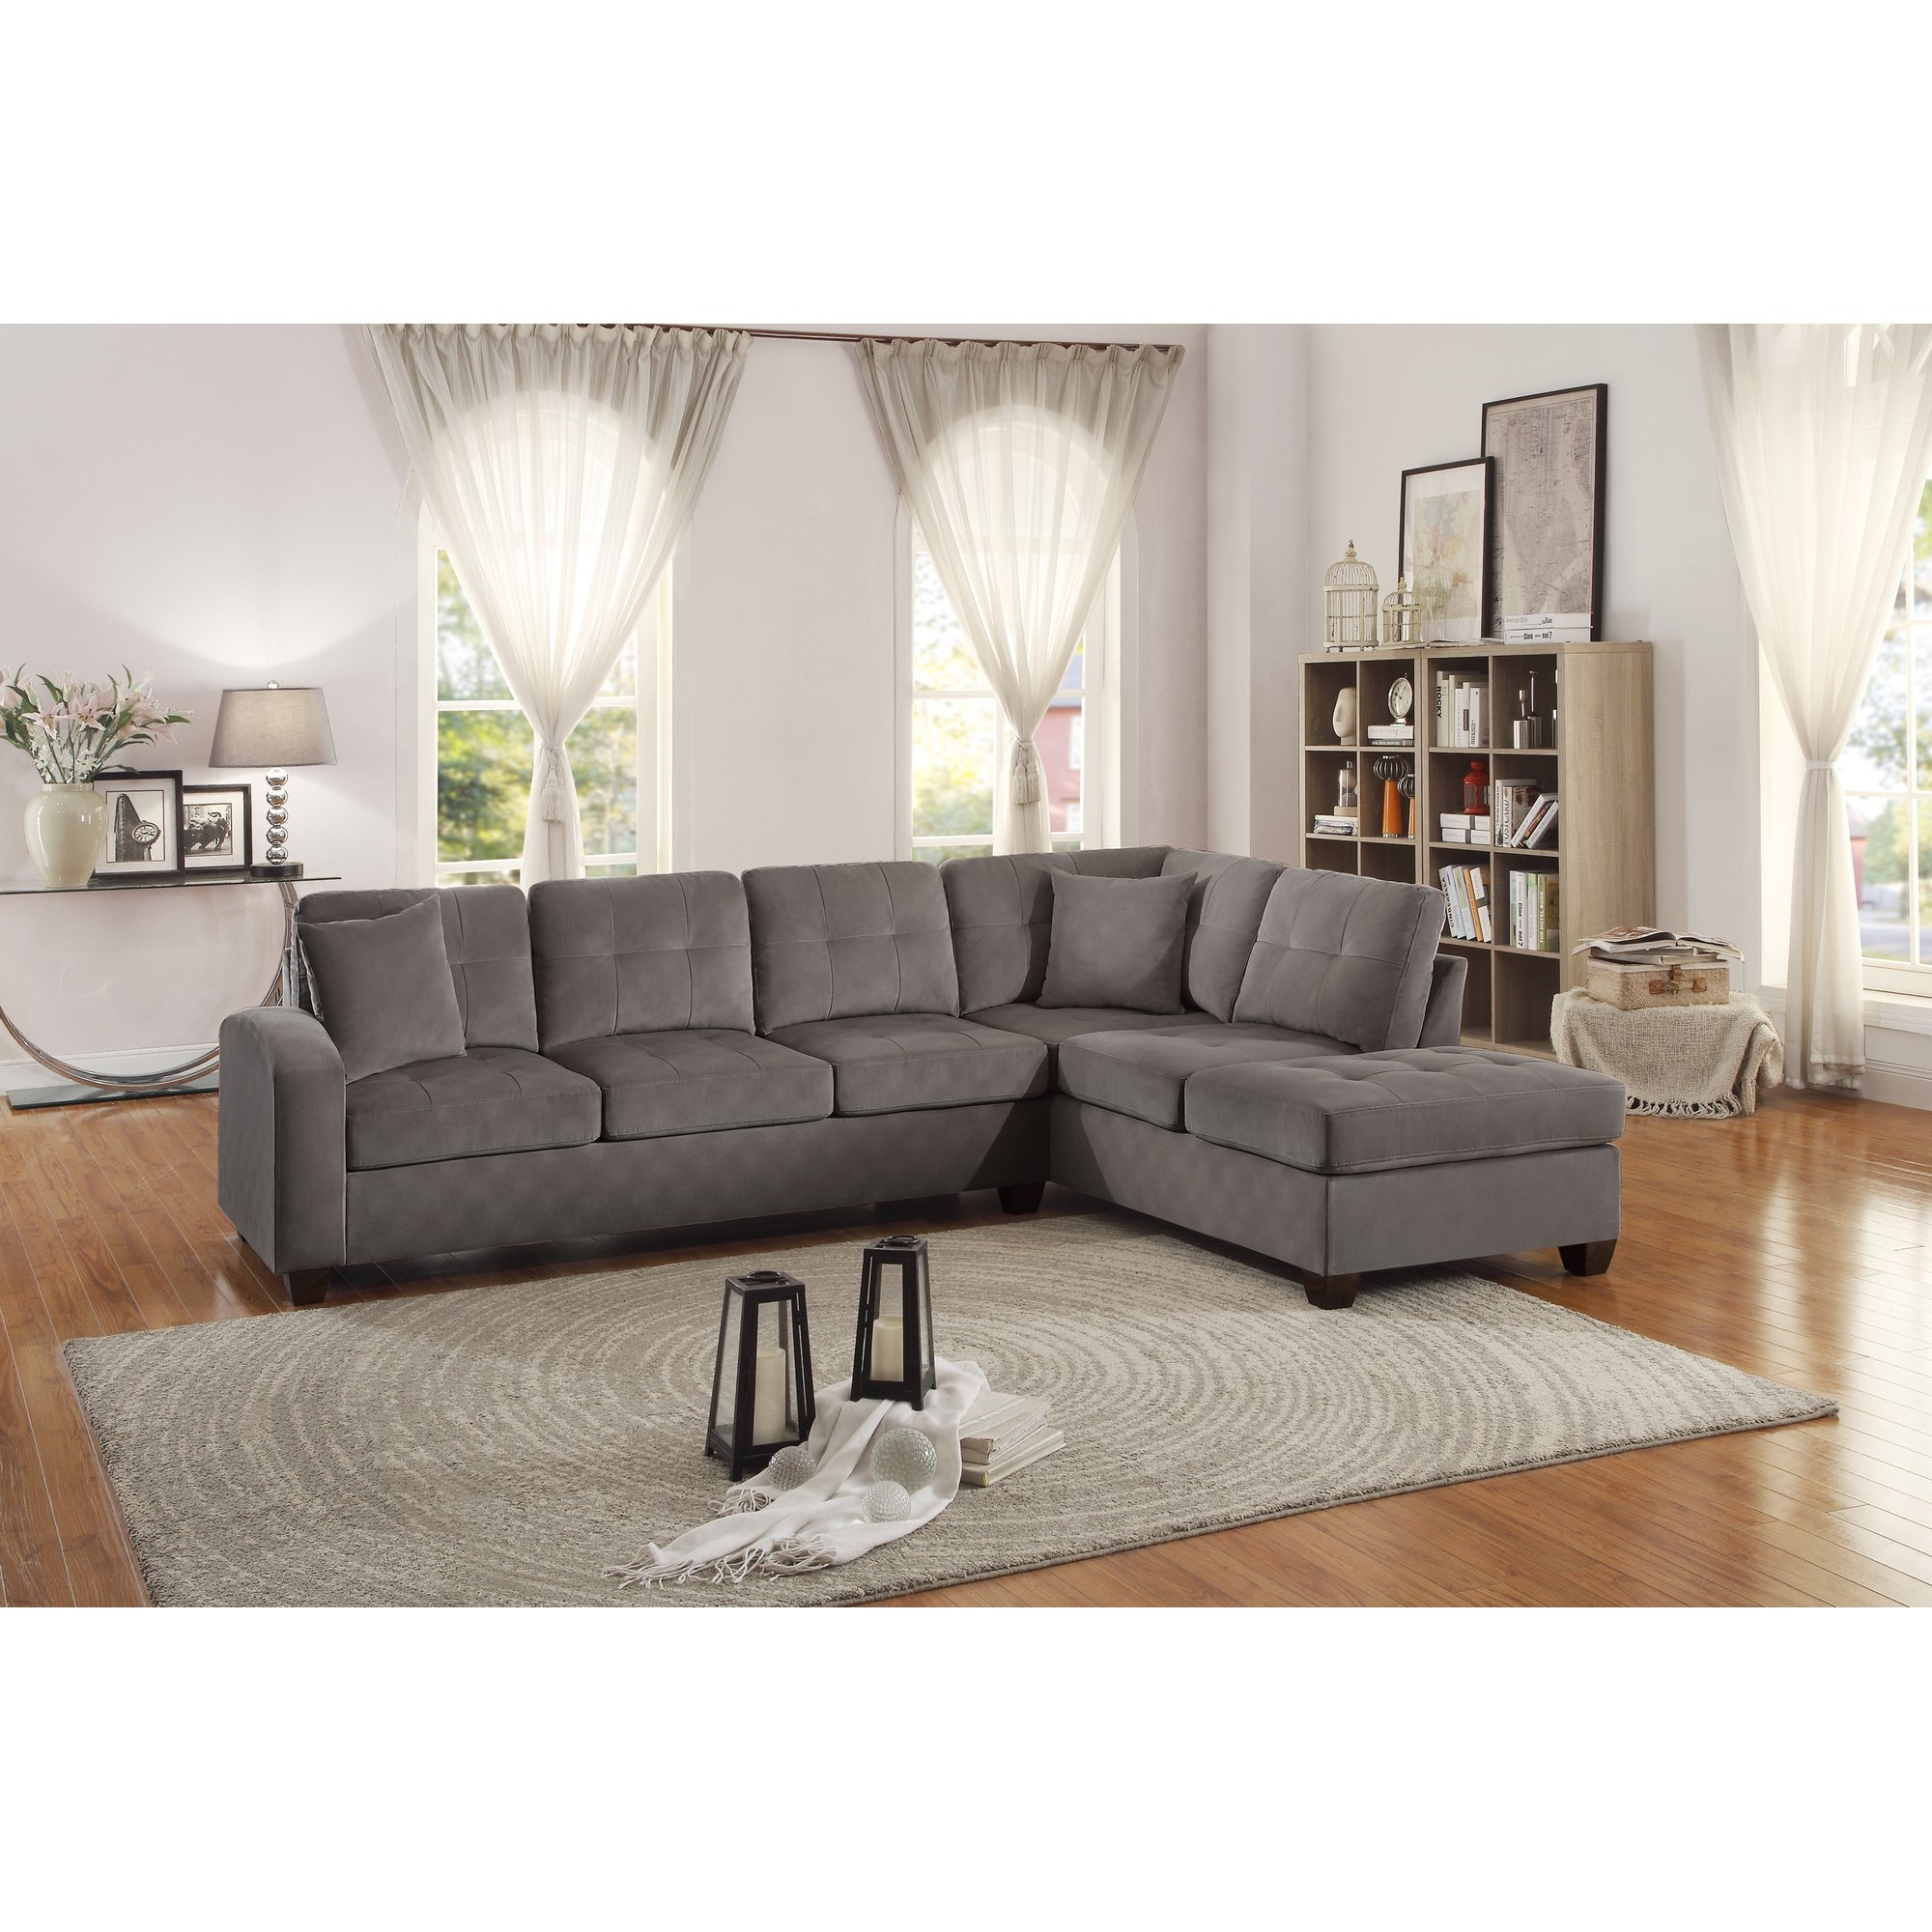 Sectional Sofas Youll Love Wayfair Regarding Colorful Sectional Sofas (View 5 of 15)